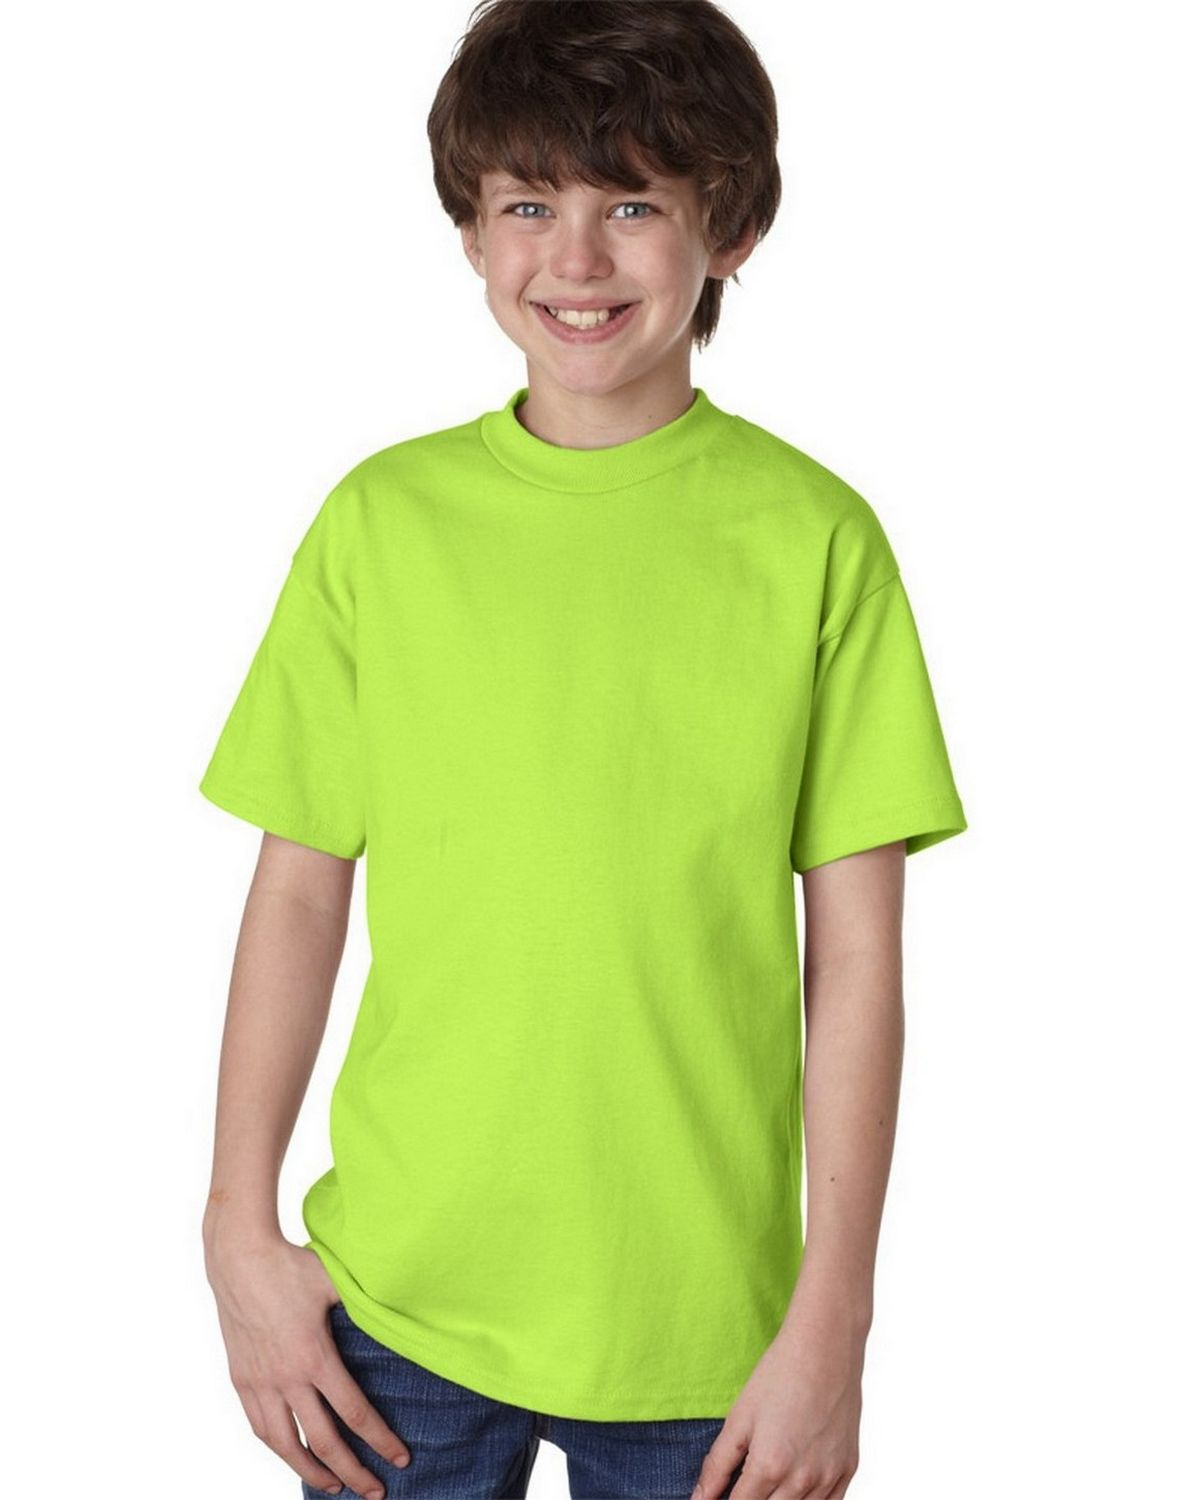 Hanes 5450 100% Youth Cotton Comfort Tee - Lime - L 5450